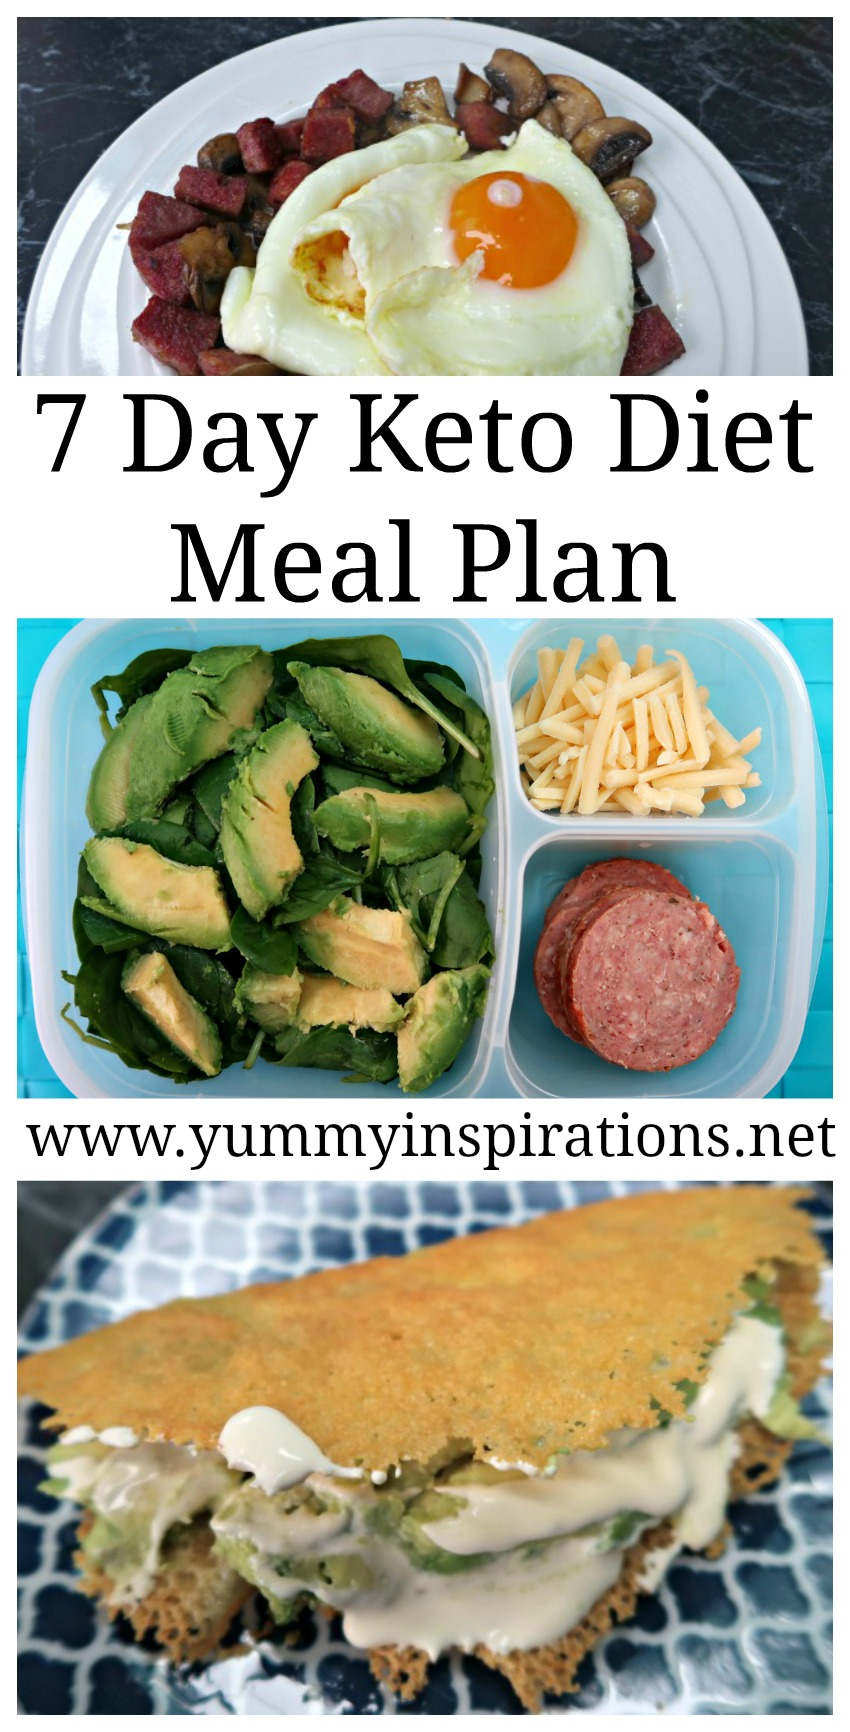 7 Day Keto Diet Meal Plan For Weight Loss - Low Carb Ketogenic Foods And  Sample